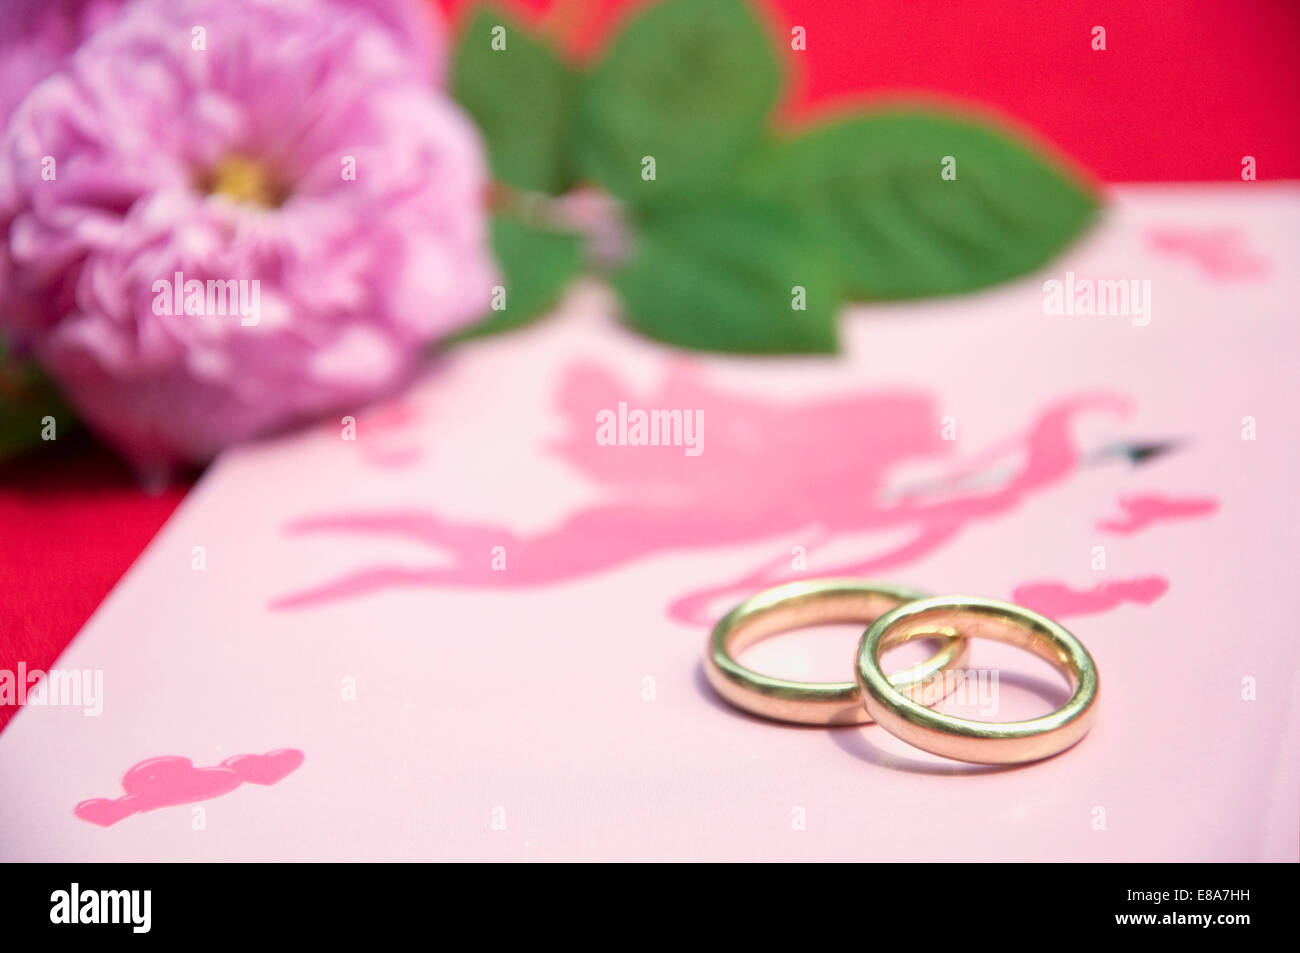 Wedding rings on wedding card with roses, close up Stock Photo ...